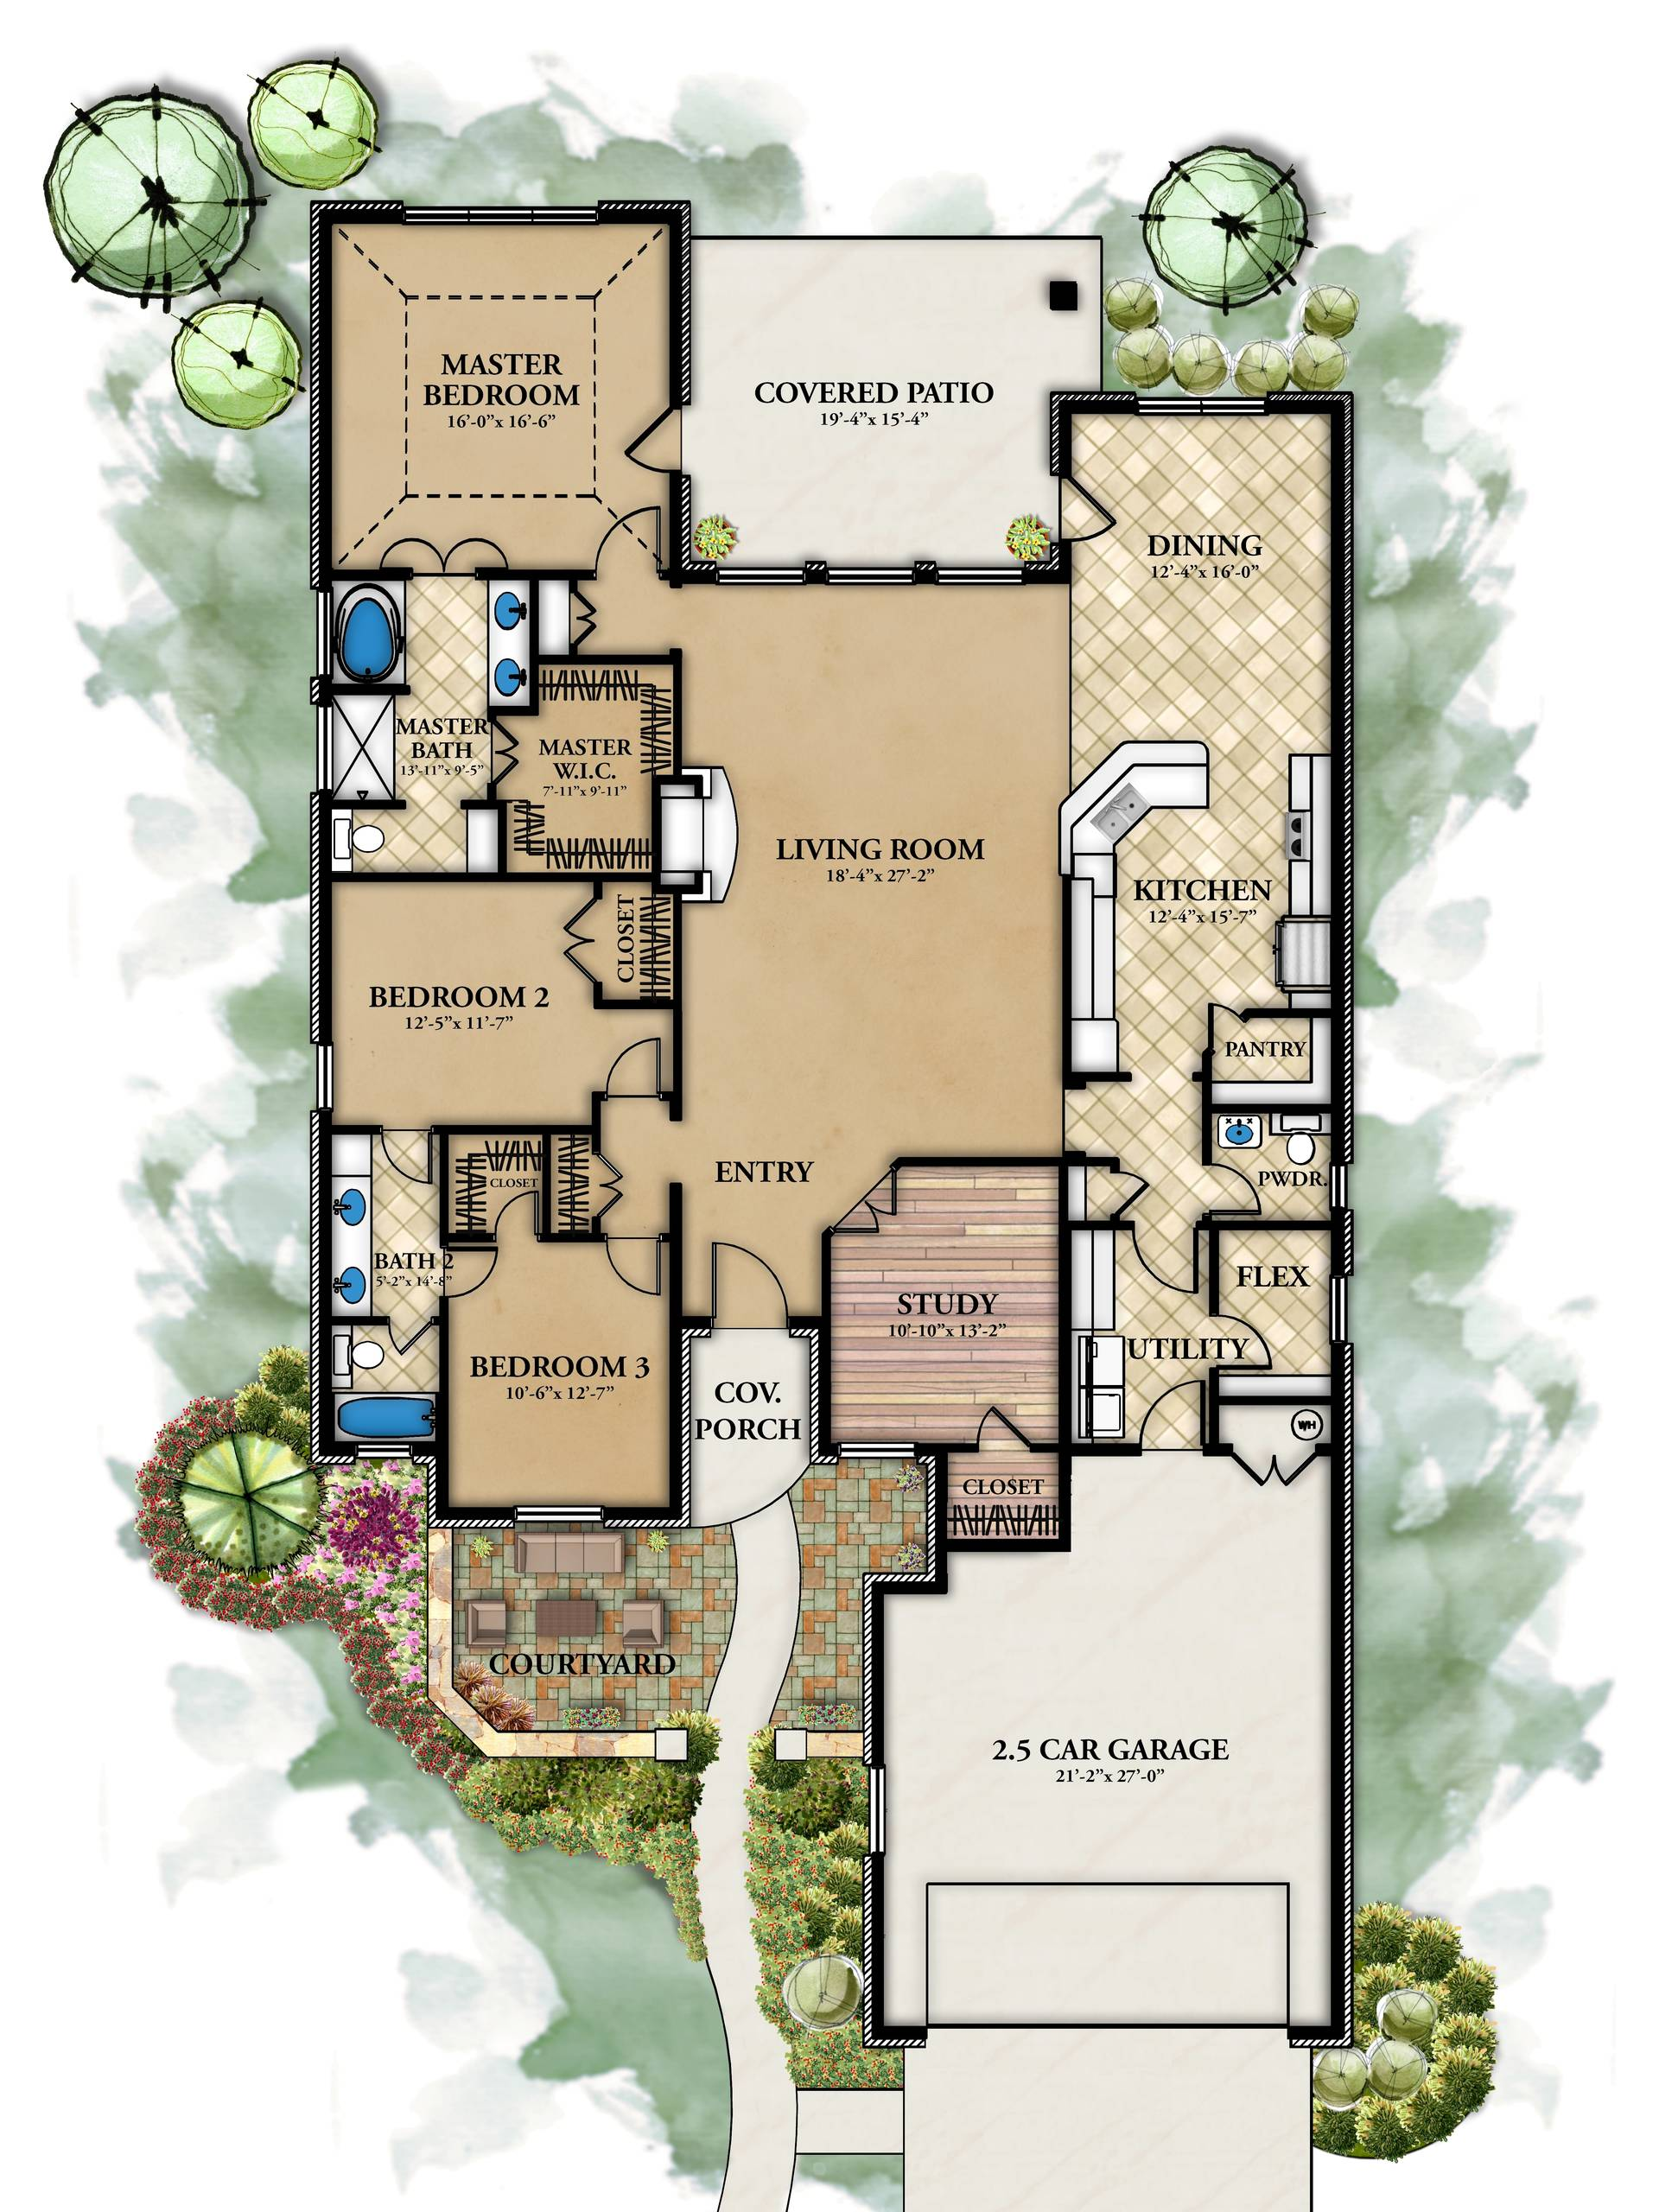 Seven Oaks (Plan 2510) - Edmond, OK